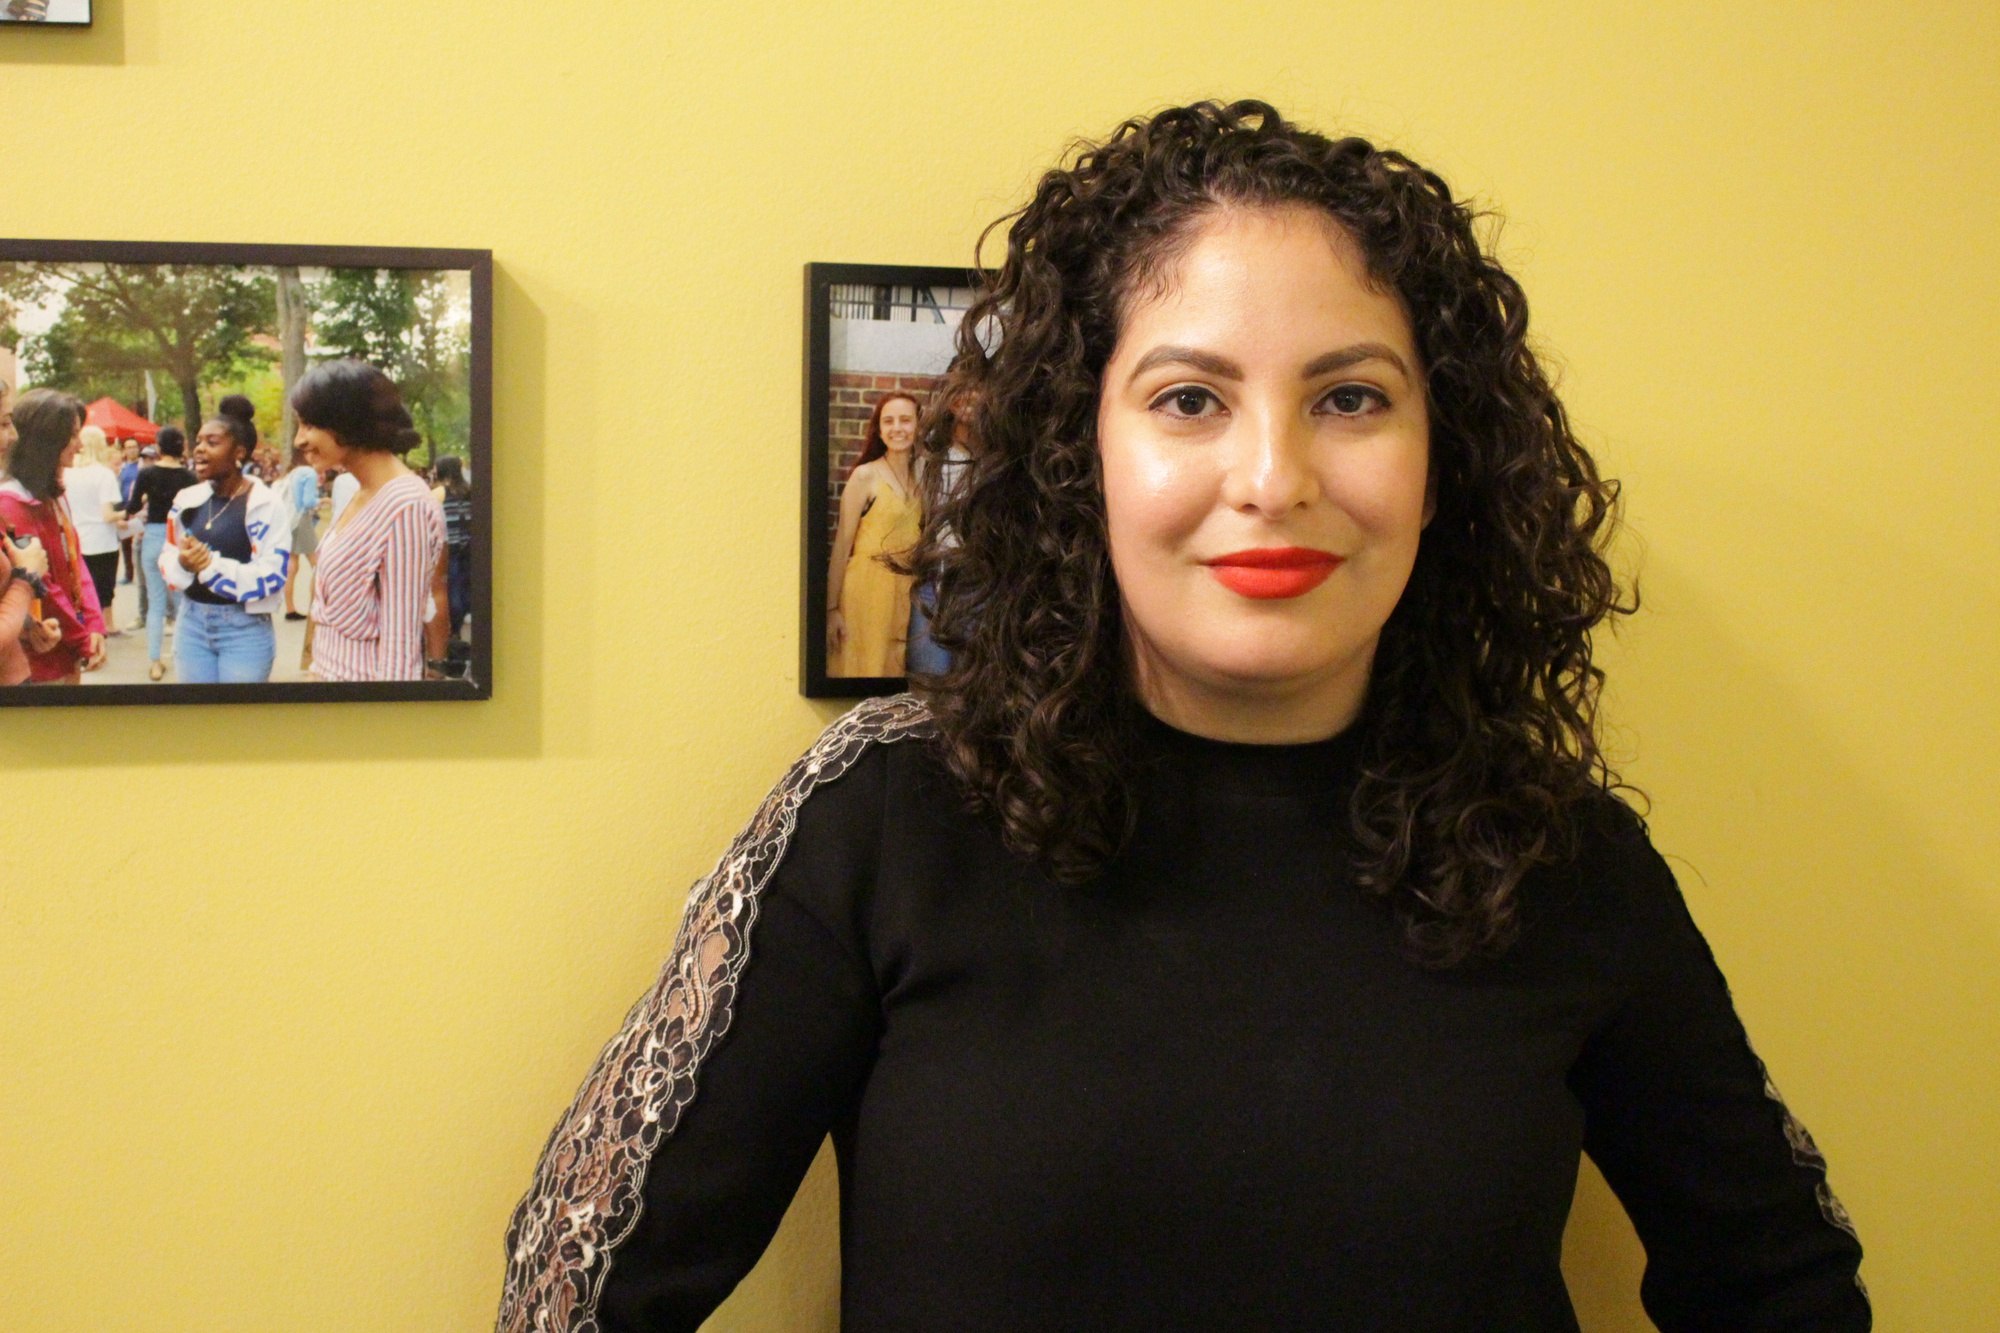 Andrea Flores was elected as the first Latinx president of Harvard's Undergraduate Council in 2008.